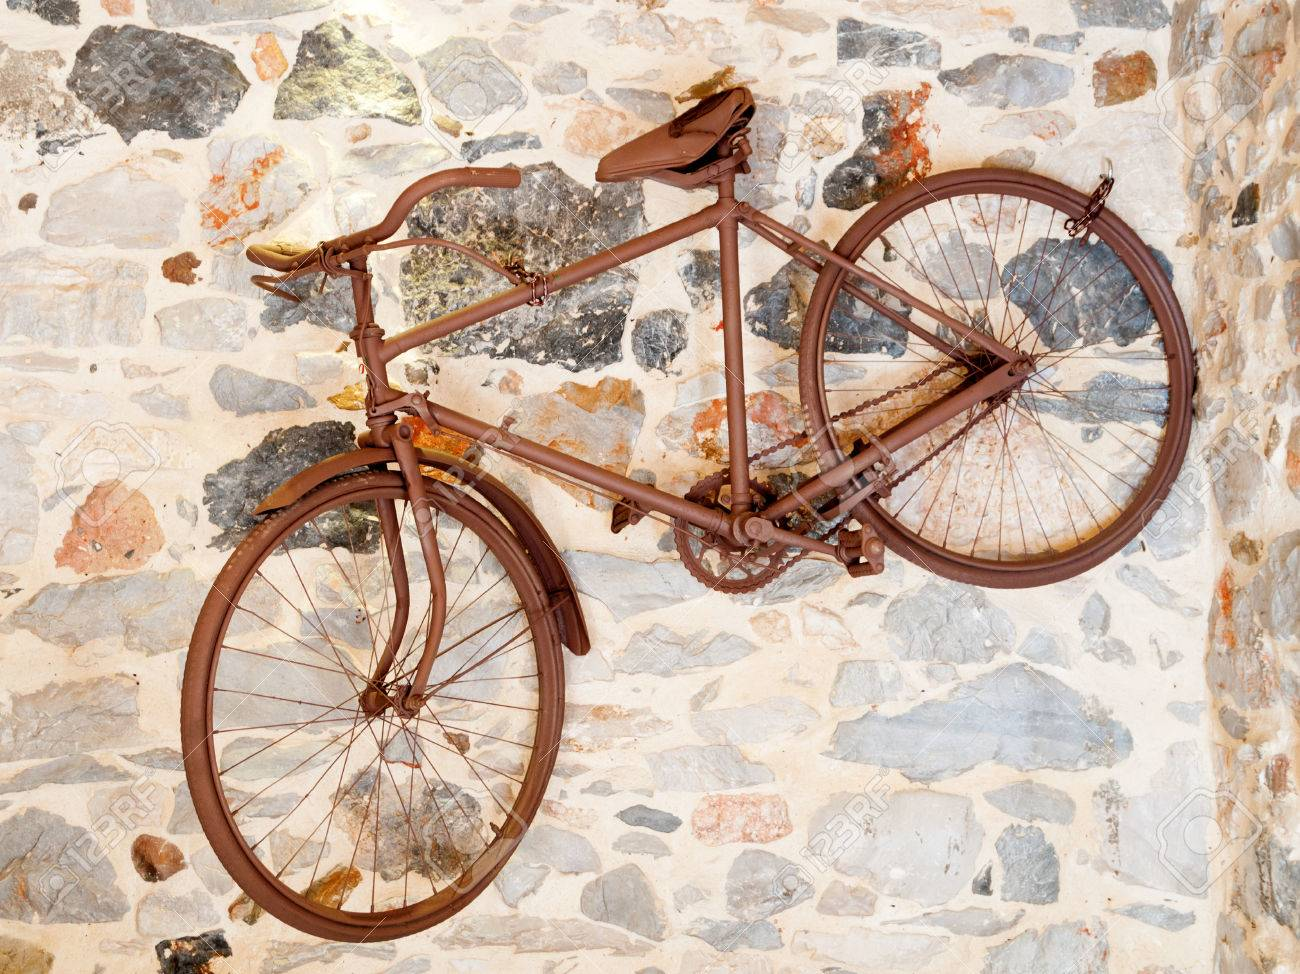 Old Bicycle Like Decoration On The Wall Stock Photo, Picture And